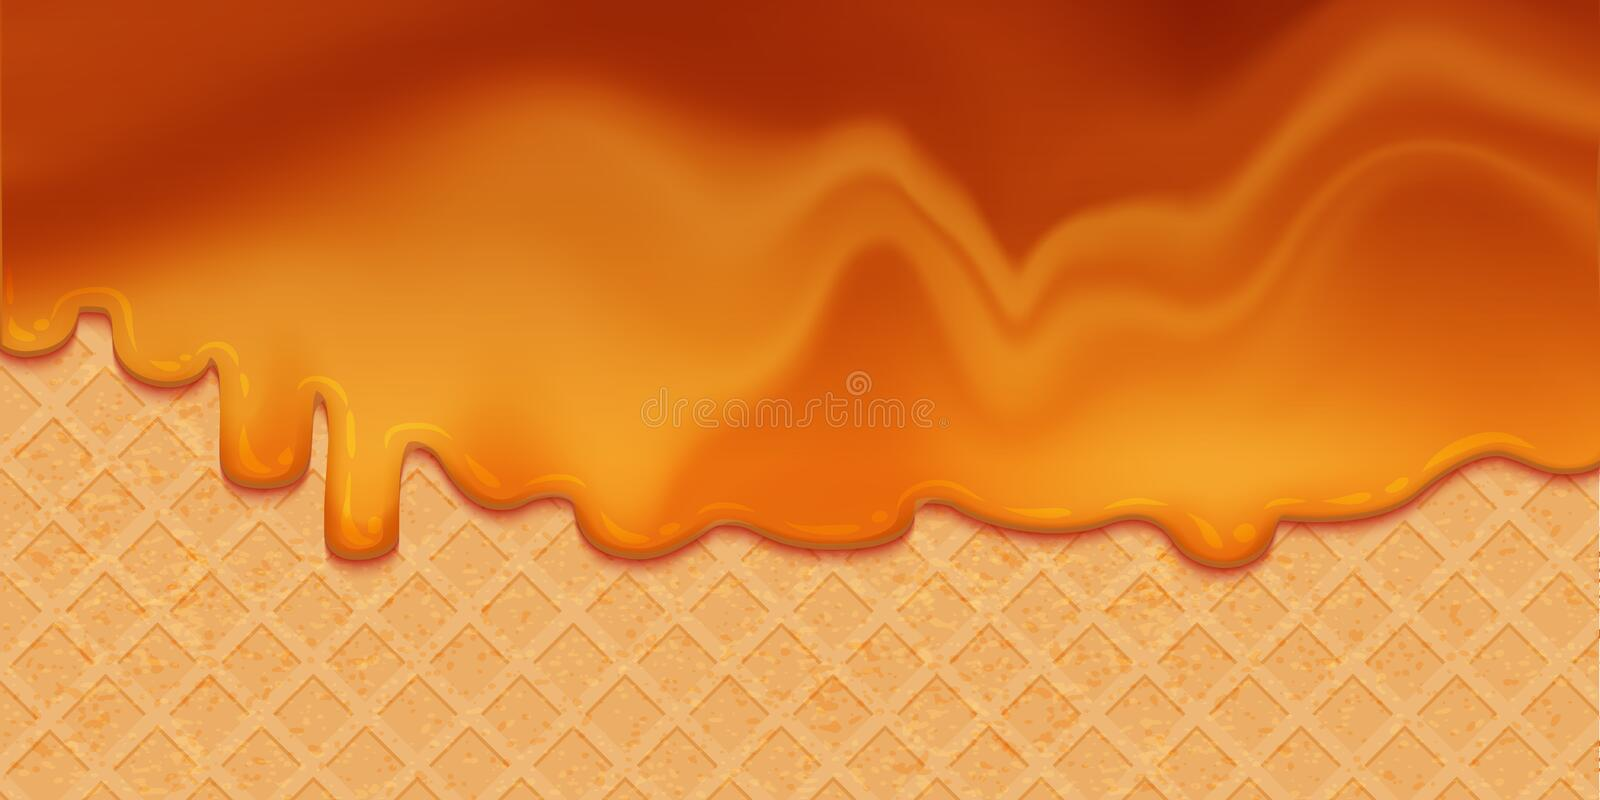 Caramel syrup melted on Wafer. Sweet Background. Vector Illustration. Tasty liquid cream. Ice cream ciryp on waffle layout vector illustration